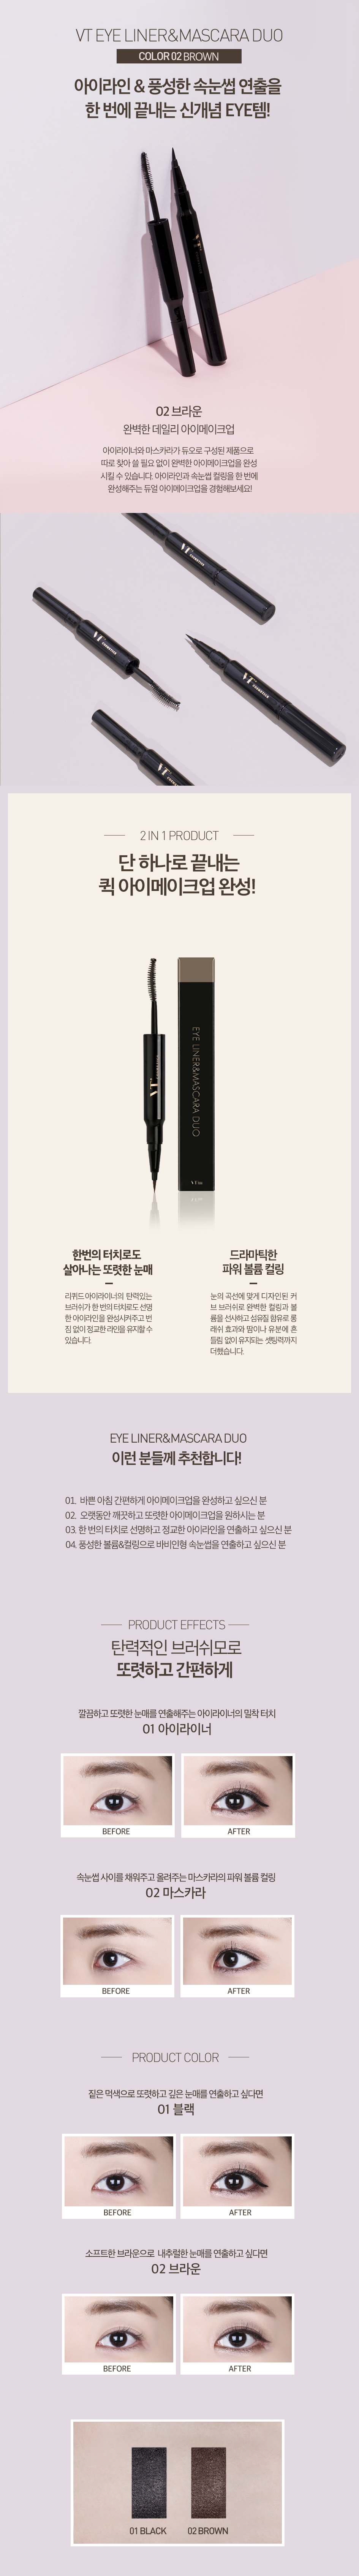 VT Eye Liner & Mascara Duo